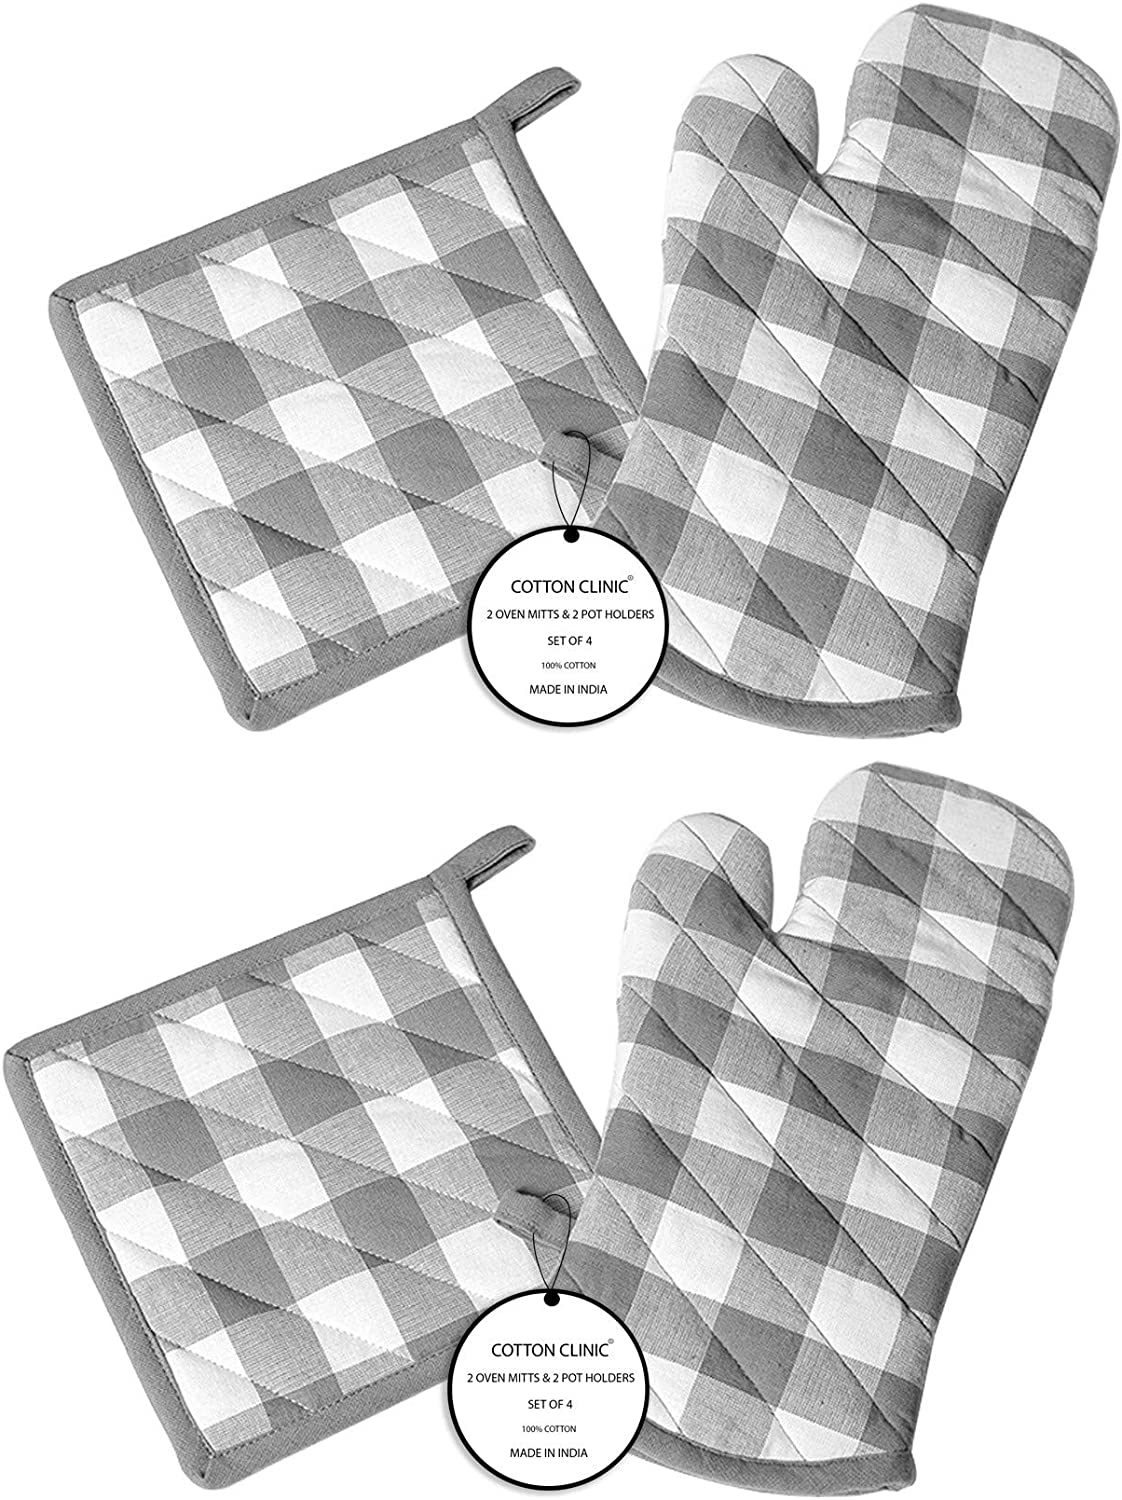 Cotton Clinic Gingham Buffalo Check 100% Cotton Oven Mitts Gloves and Pot Holder Set of 4, Heat Resistant for Everyday Kitchen Cooking Baking BBQ - Grey White